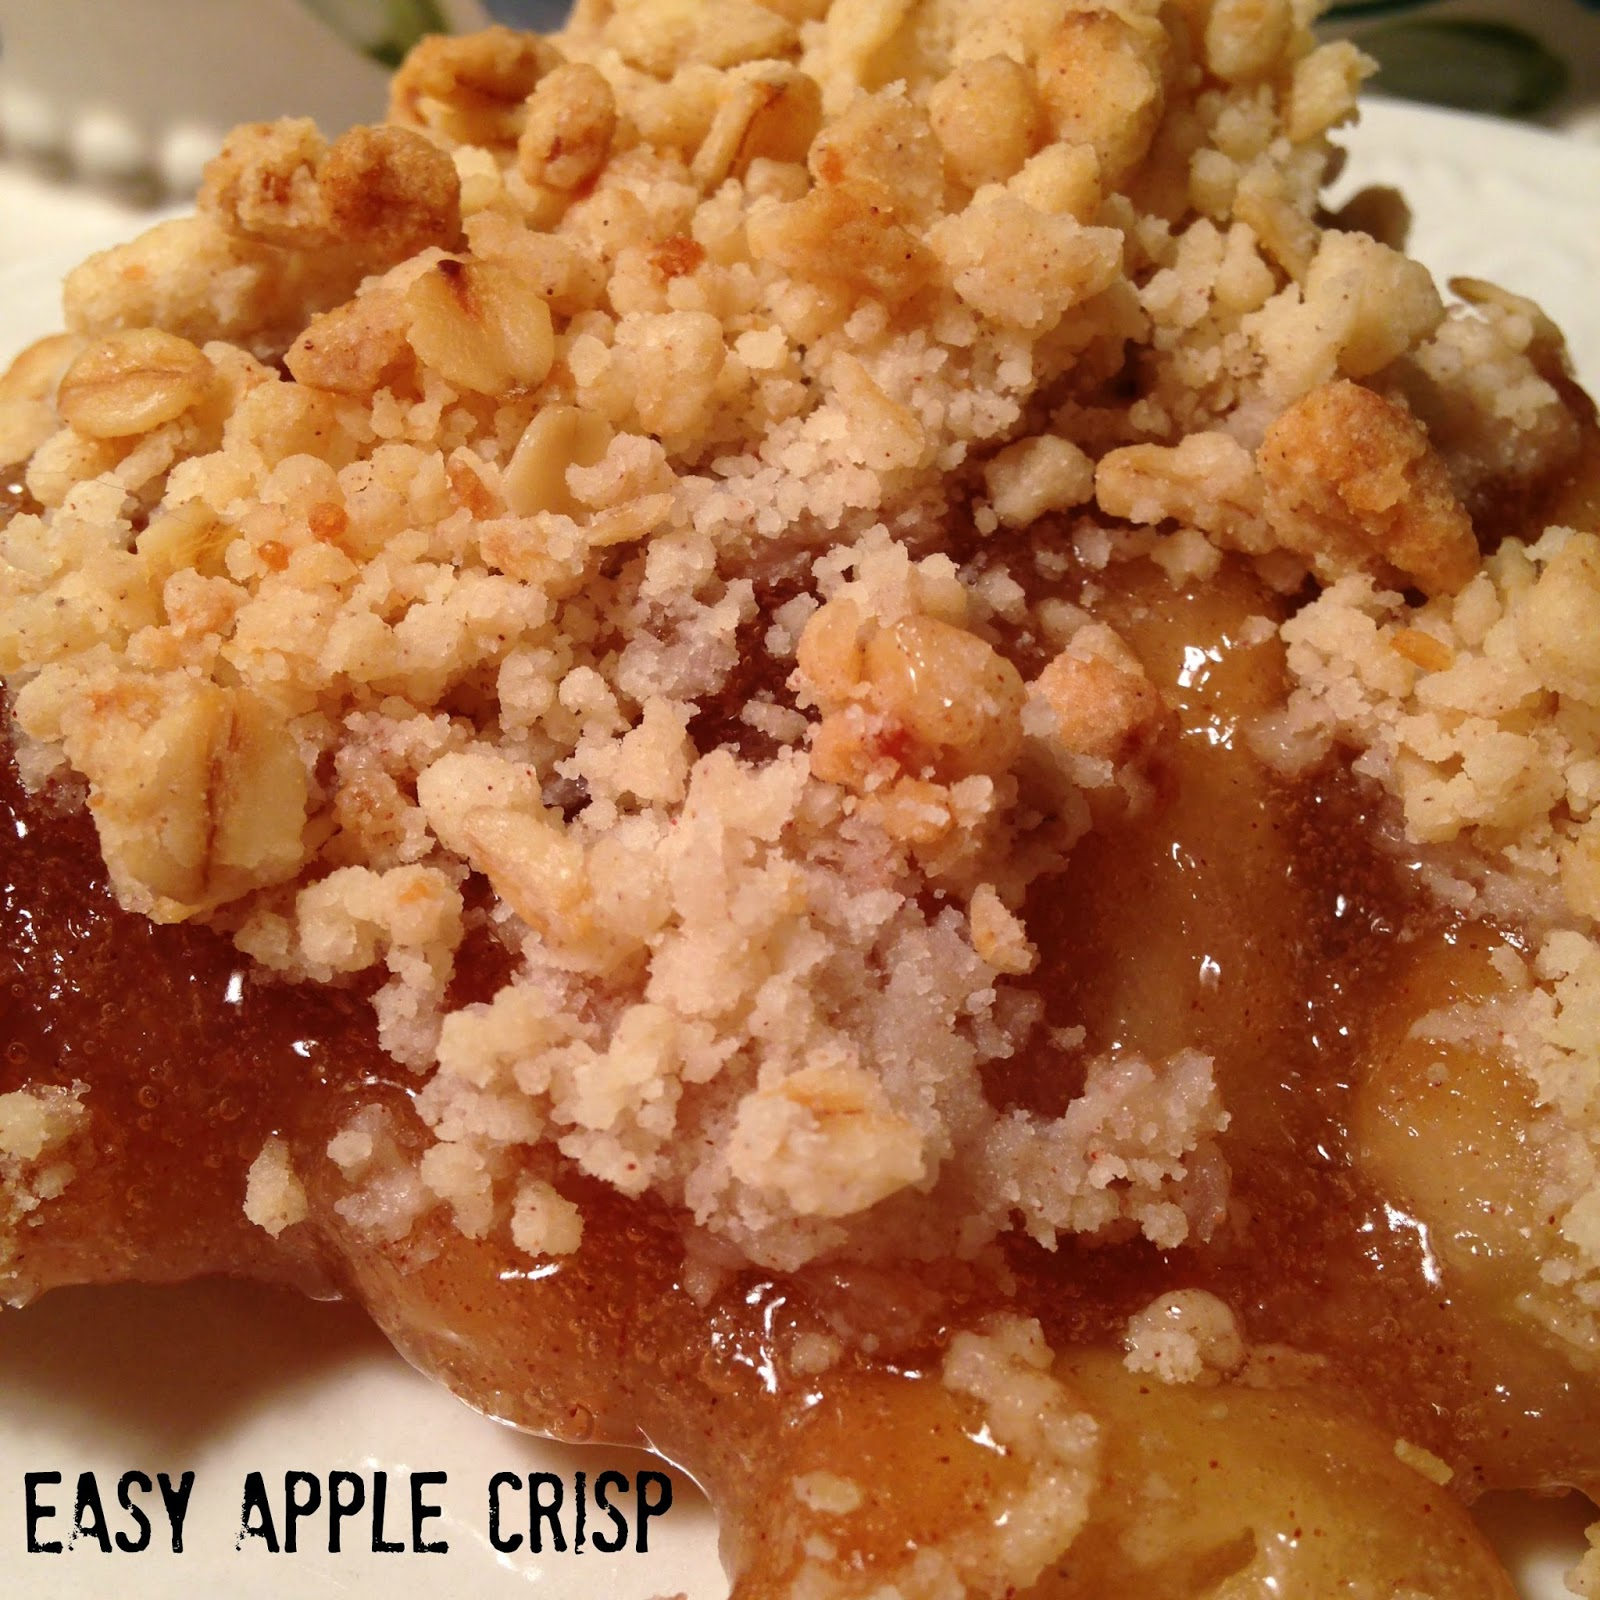 Easy Apple Crisp Turnips 2 Tangerines